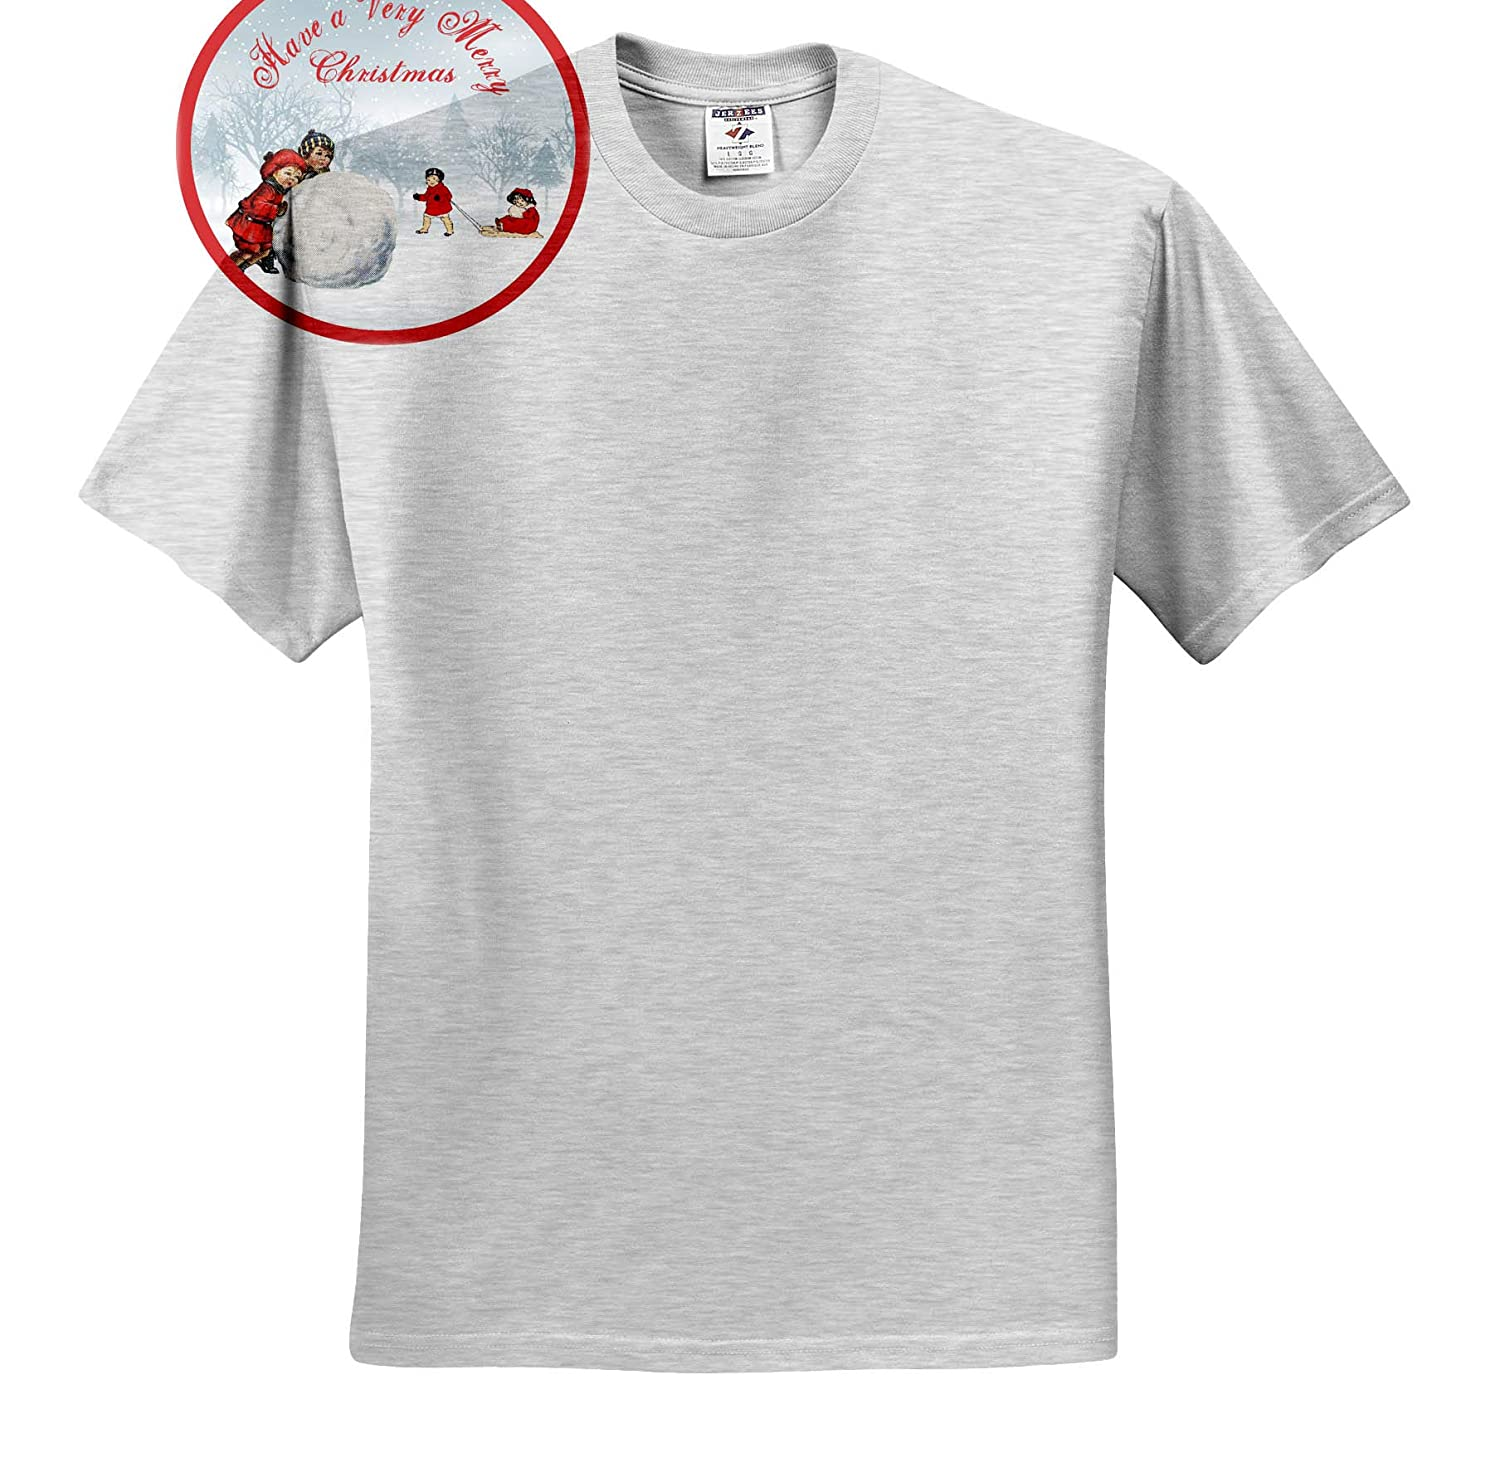 Nostalgic Christmas Children Playing in The Snow 3dRose TNMGraphics Christmas T-Shirts